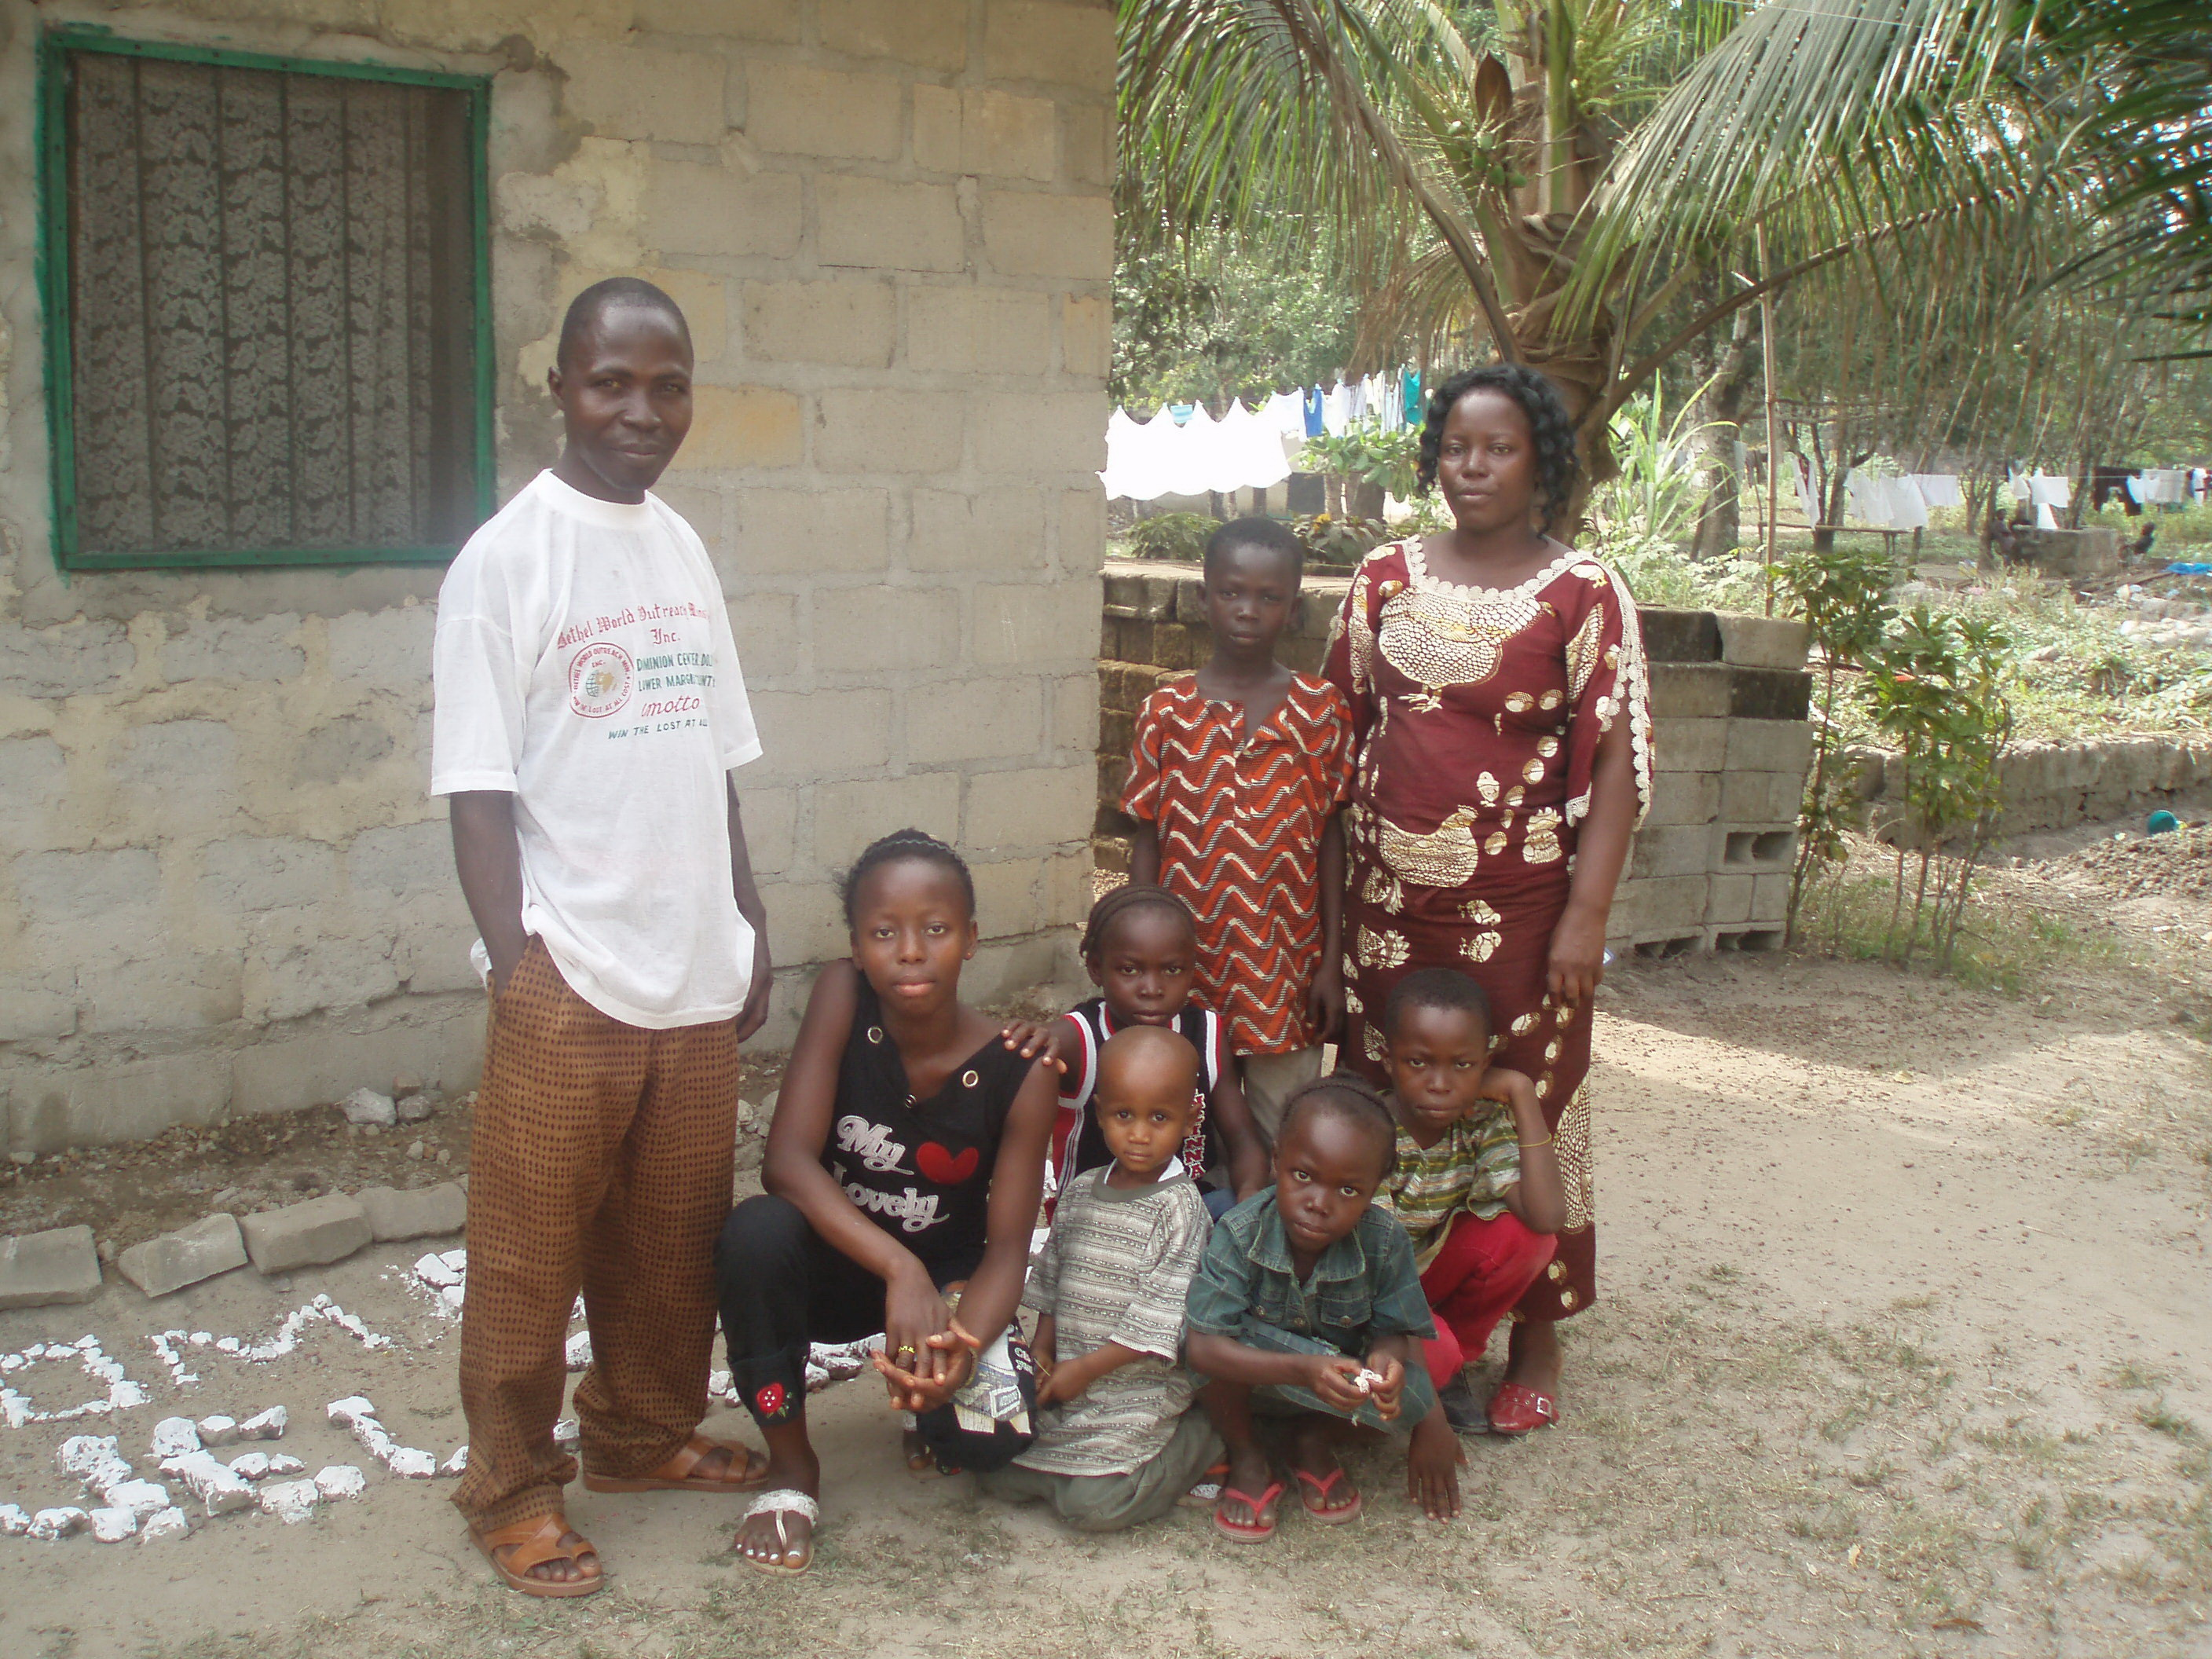 I (Karen Barkman) first met Faith's Family in 2007.  I was on a mission to find John Duwana's family and bring photos of him back to Liberia for his mother.  John fled during the war and spent years at the Krisan Refugee Camp in Ghana before coming to Canada.